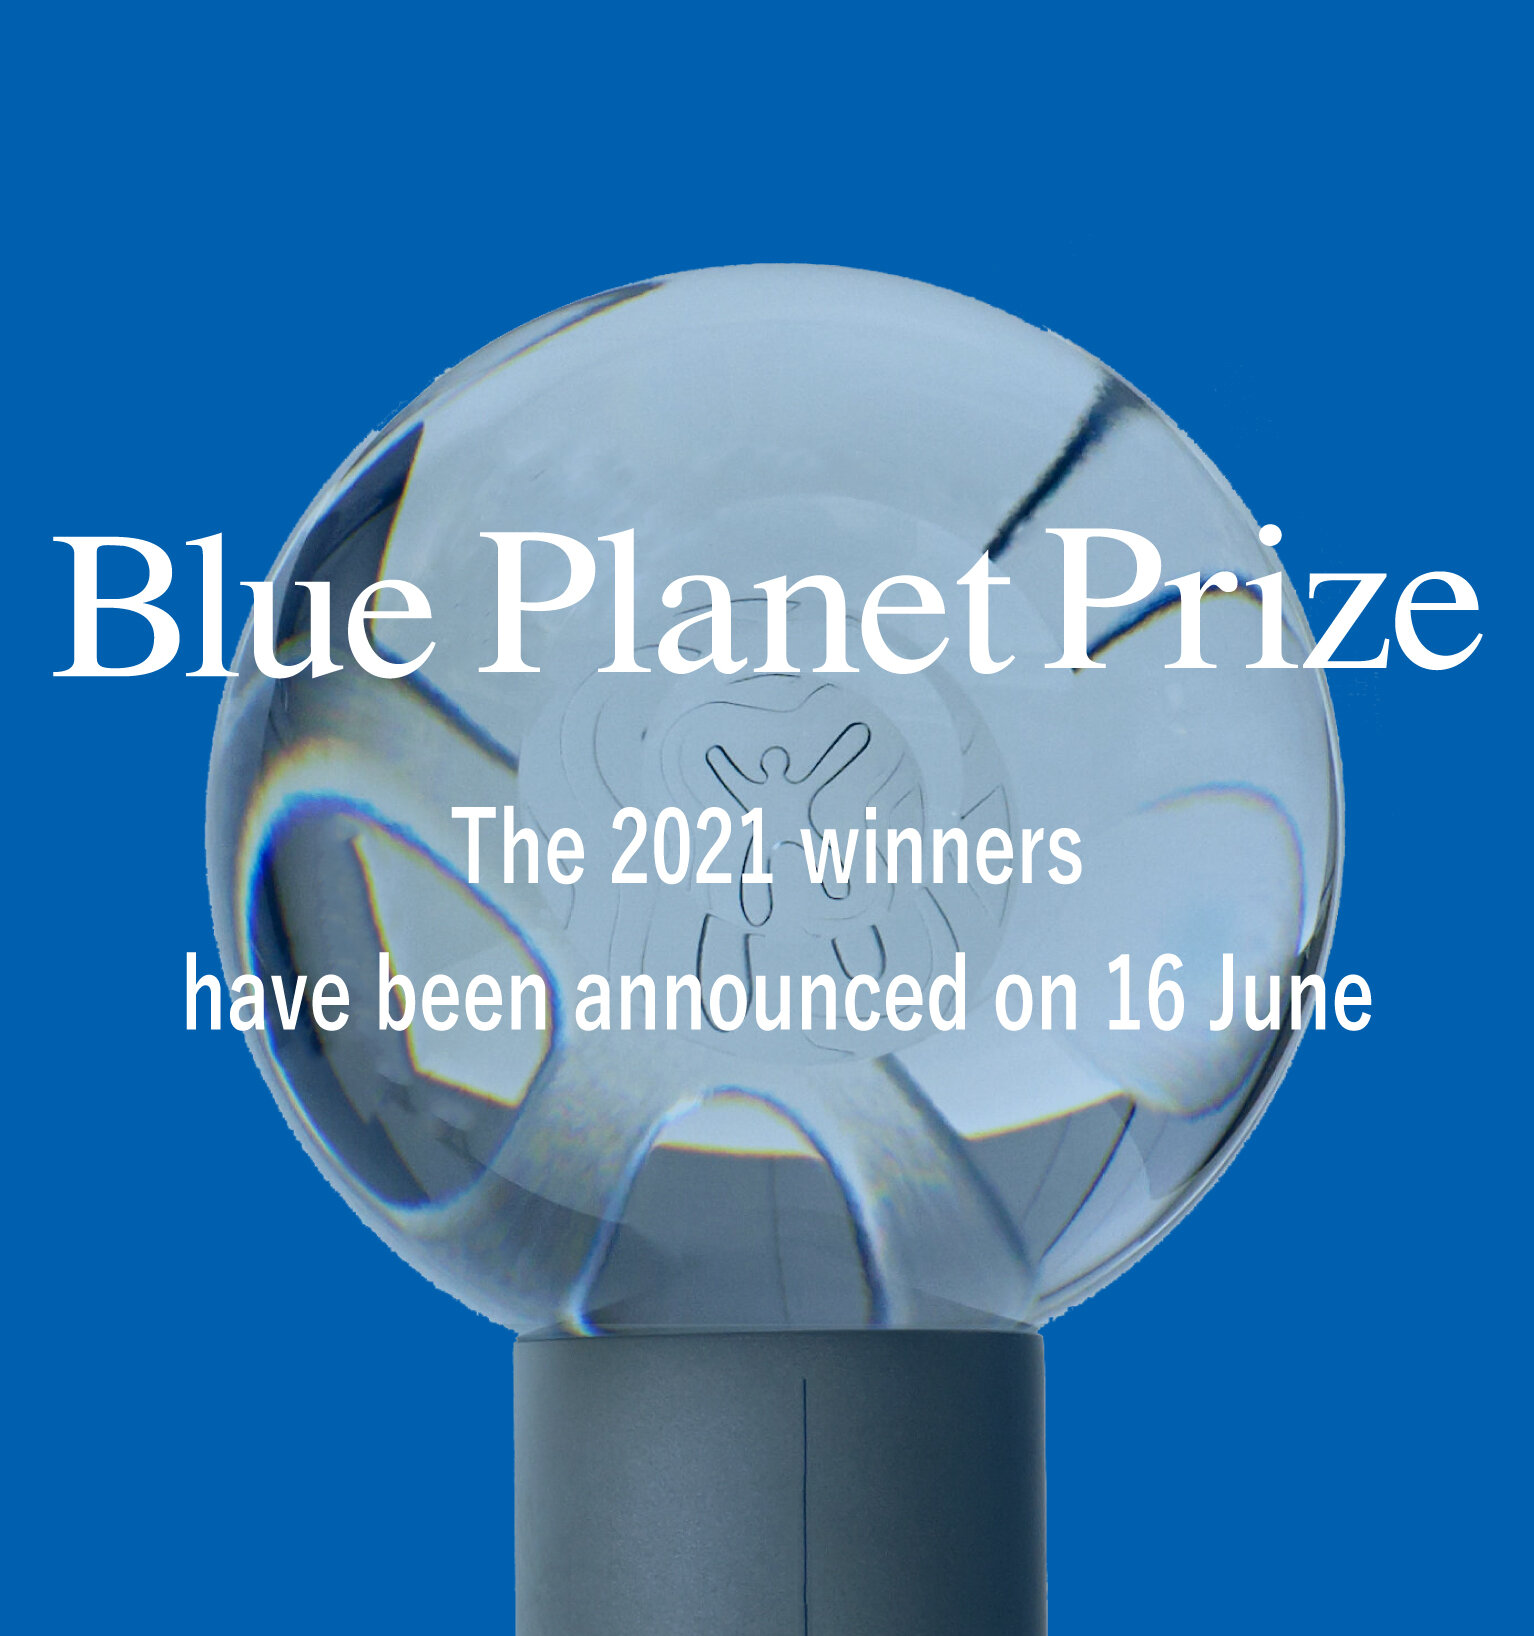 Announcing the 2021 Blue Planet Prize winners